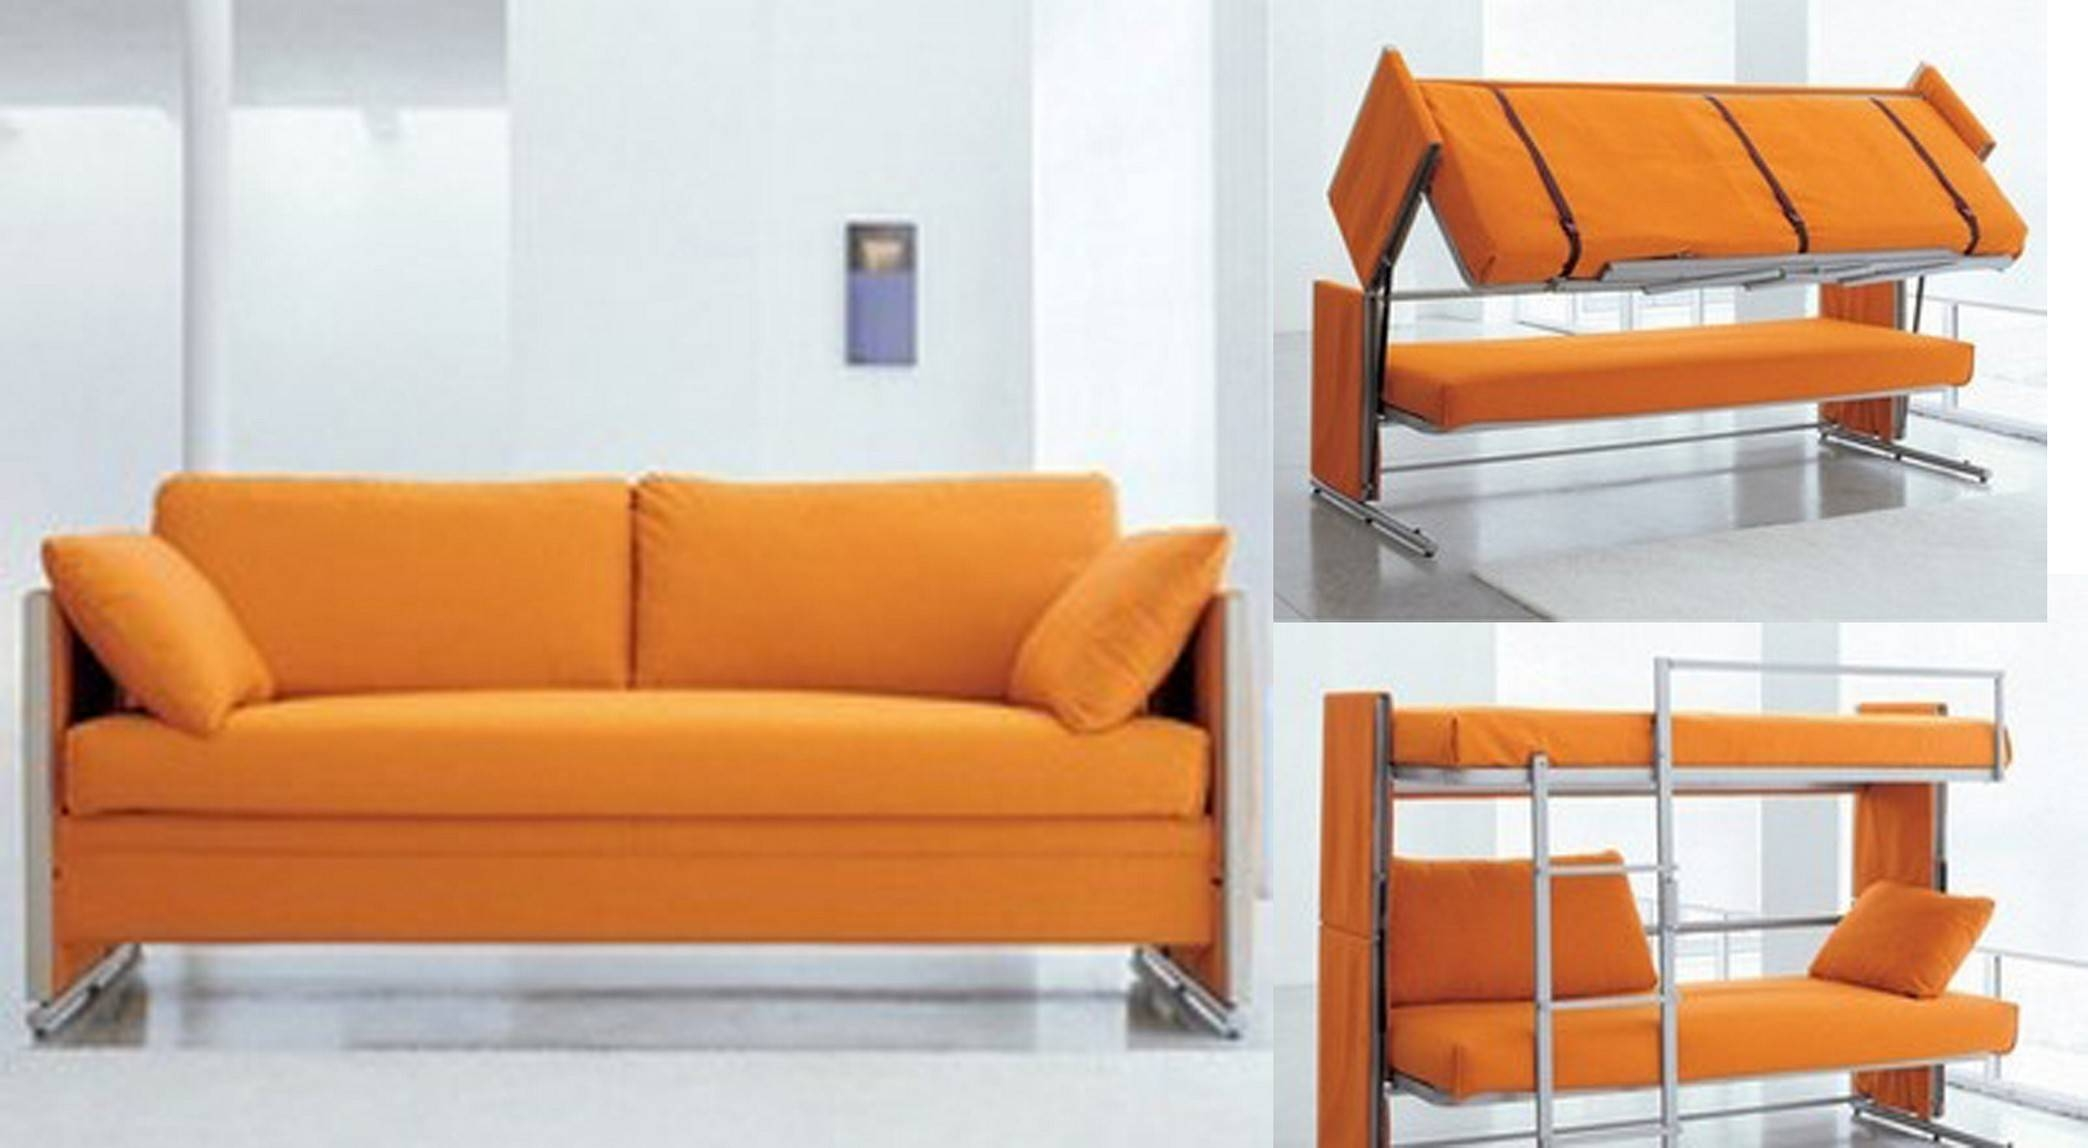 Bunk Bed Sofa For A Greater Room Design And Function inside Sofas Converts To Bunk Bed (Image 1 of 15)